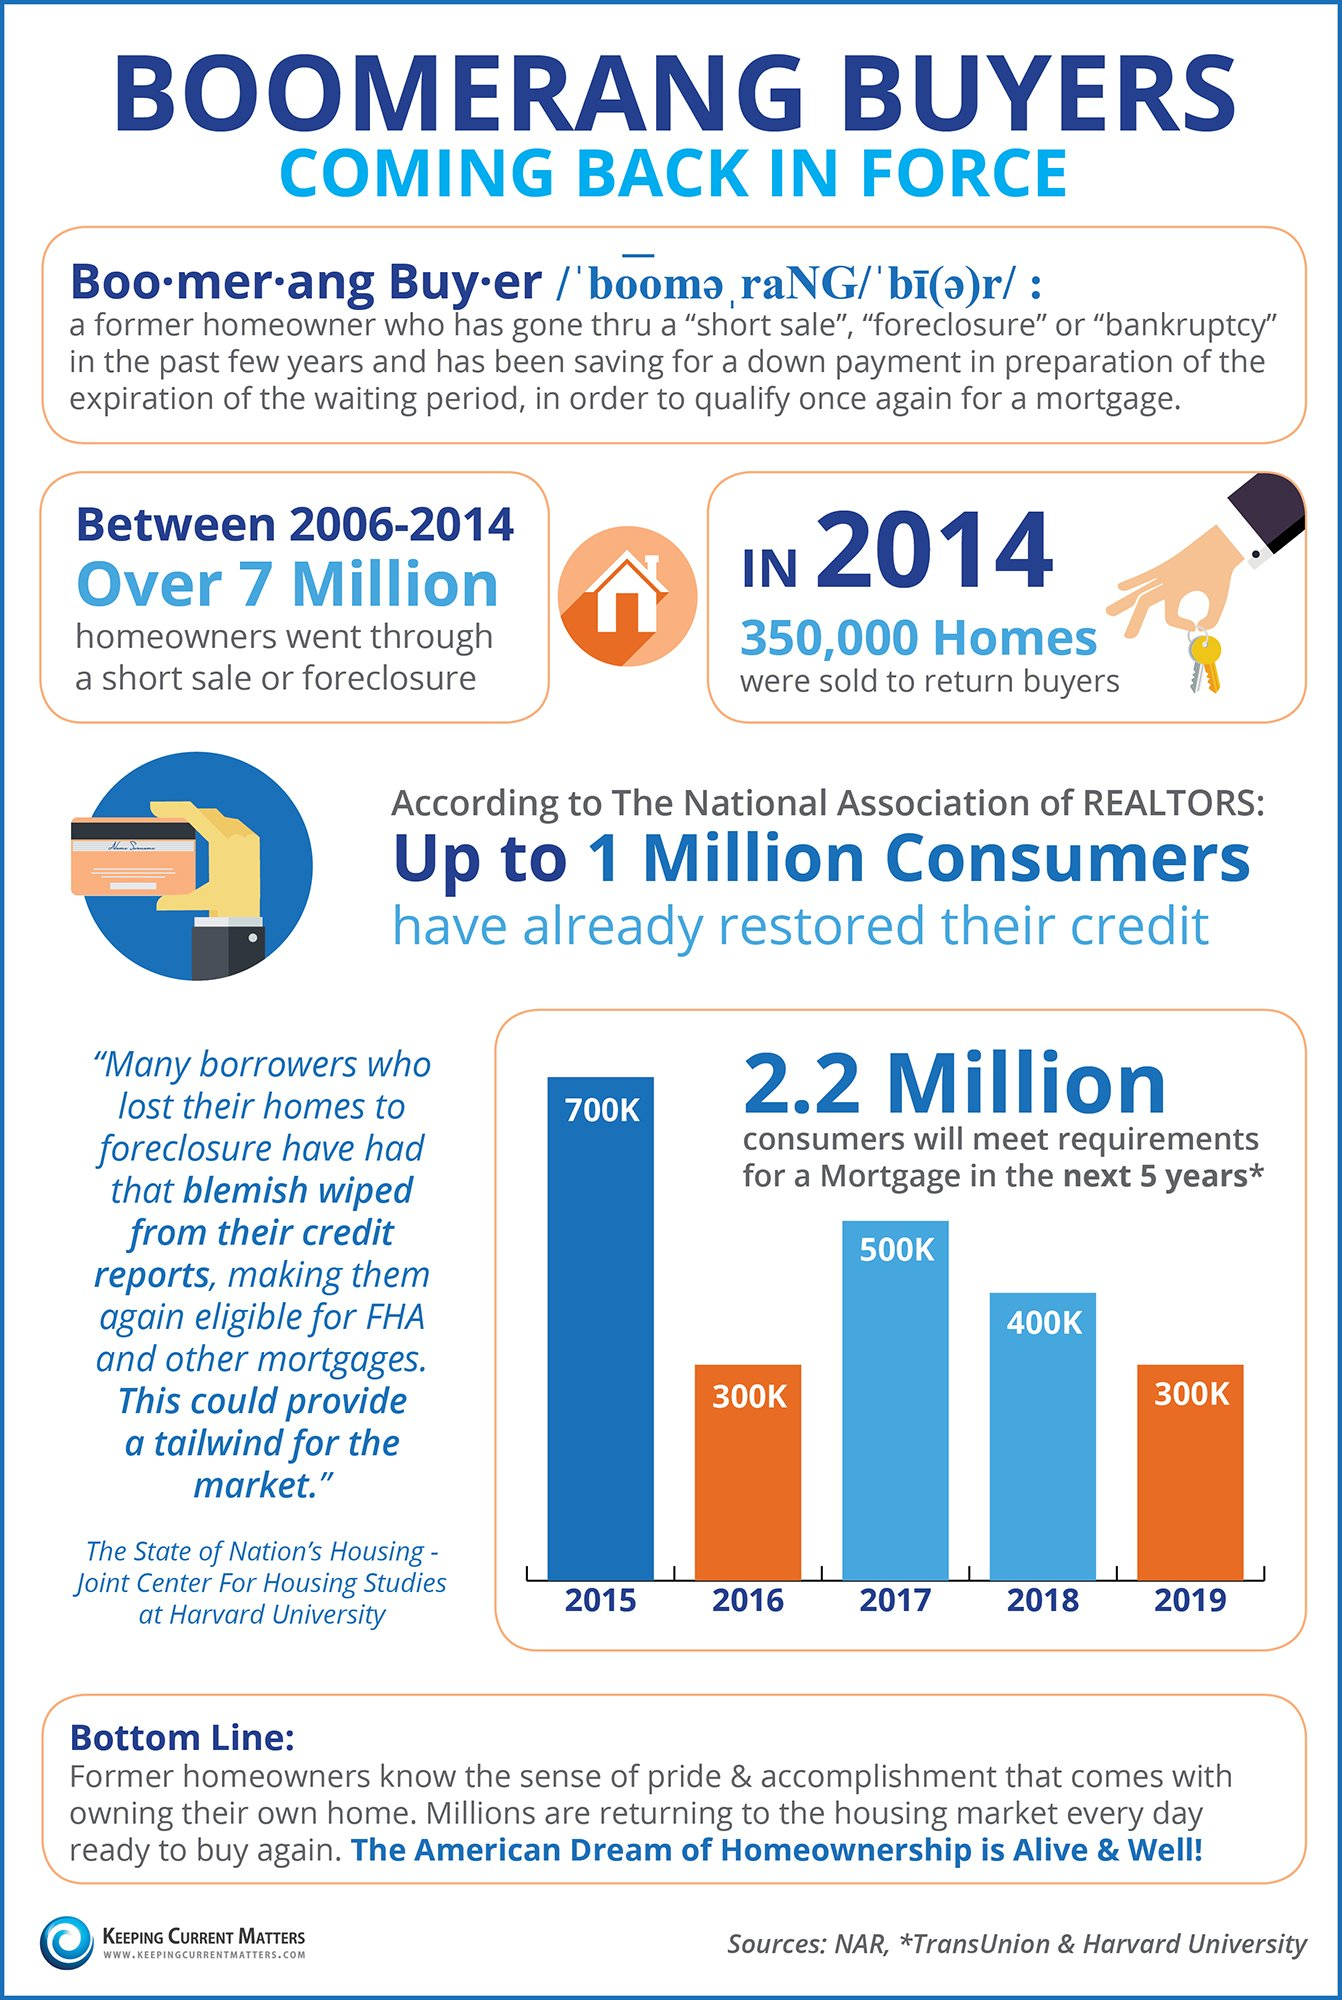 Boomerang Buyers Coming Back in Force [INFOGRAPHIC]   Keeping Current Matters